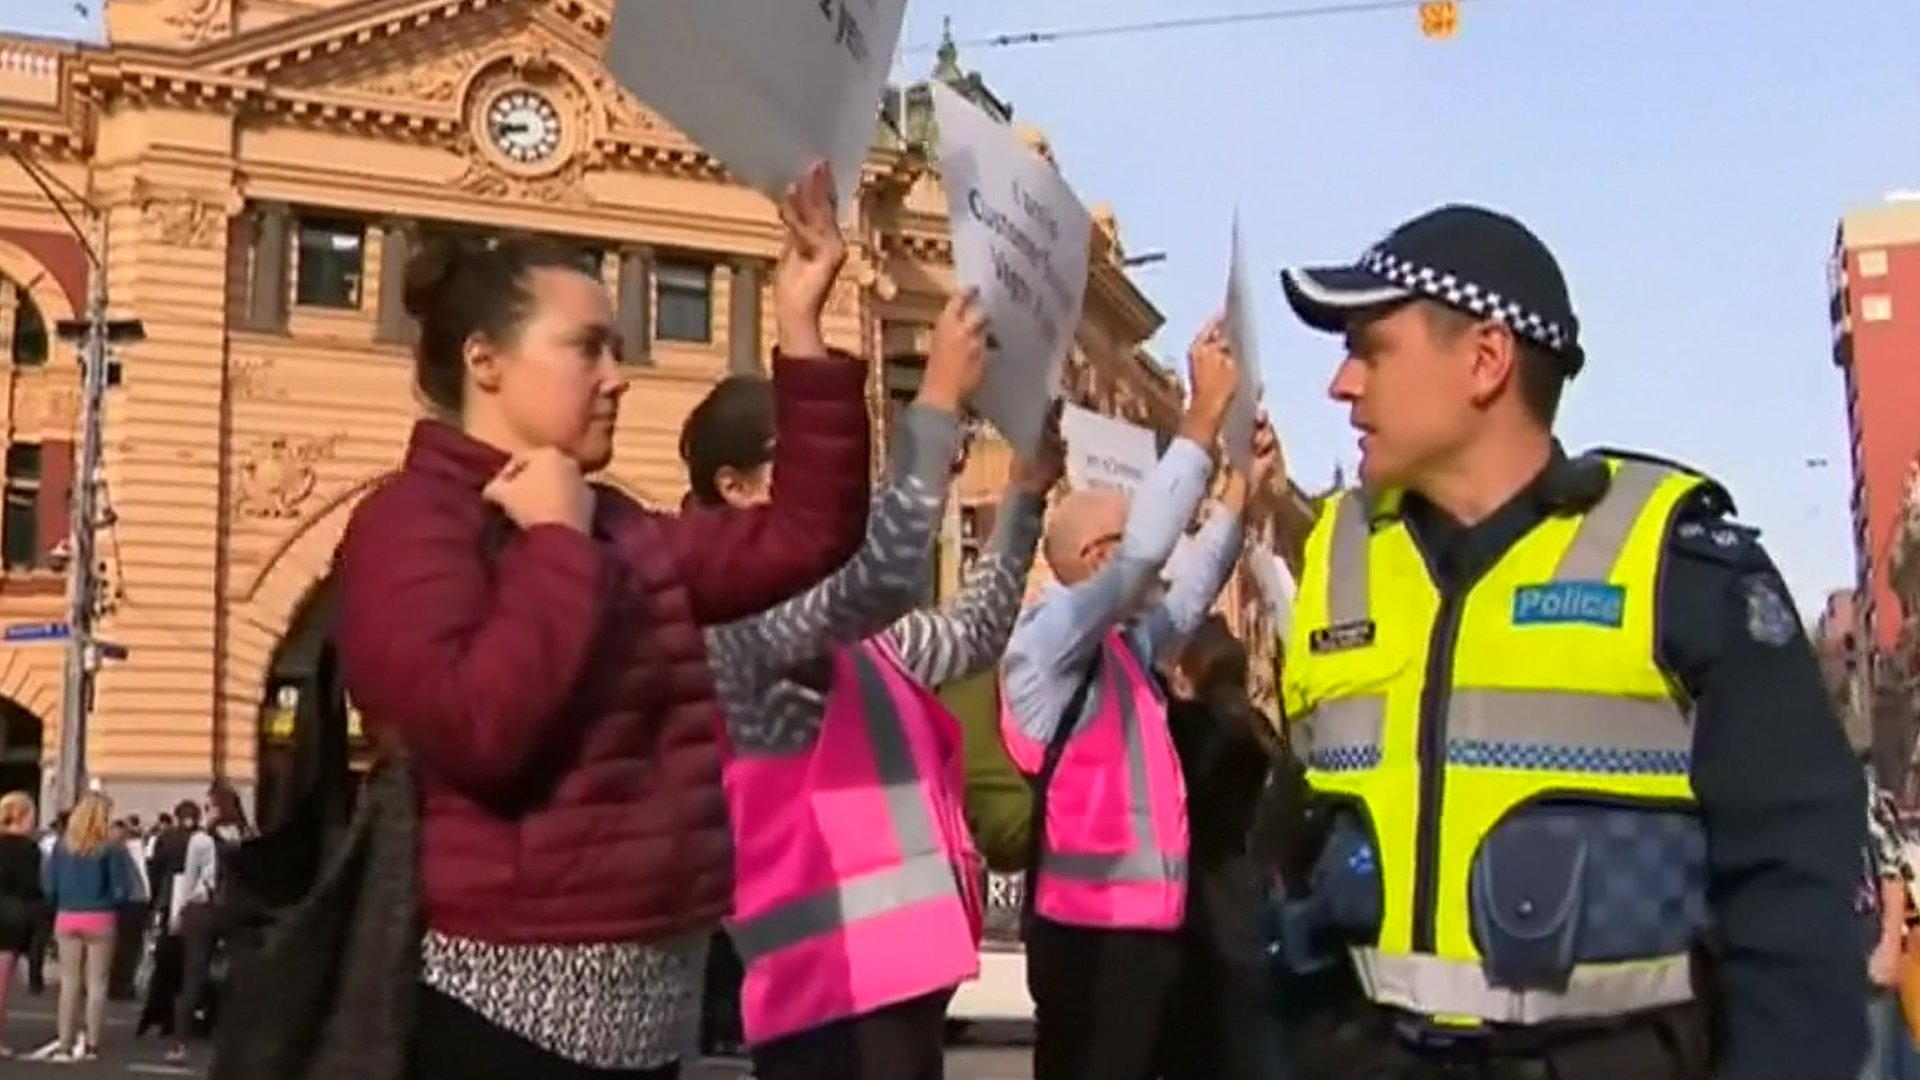 Dozens of animal rights protesters arrested in Australia